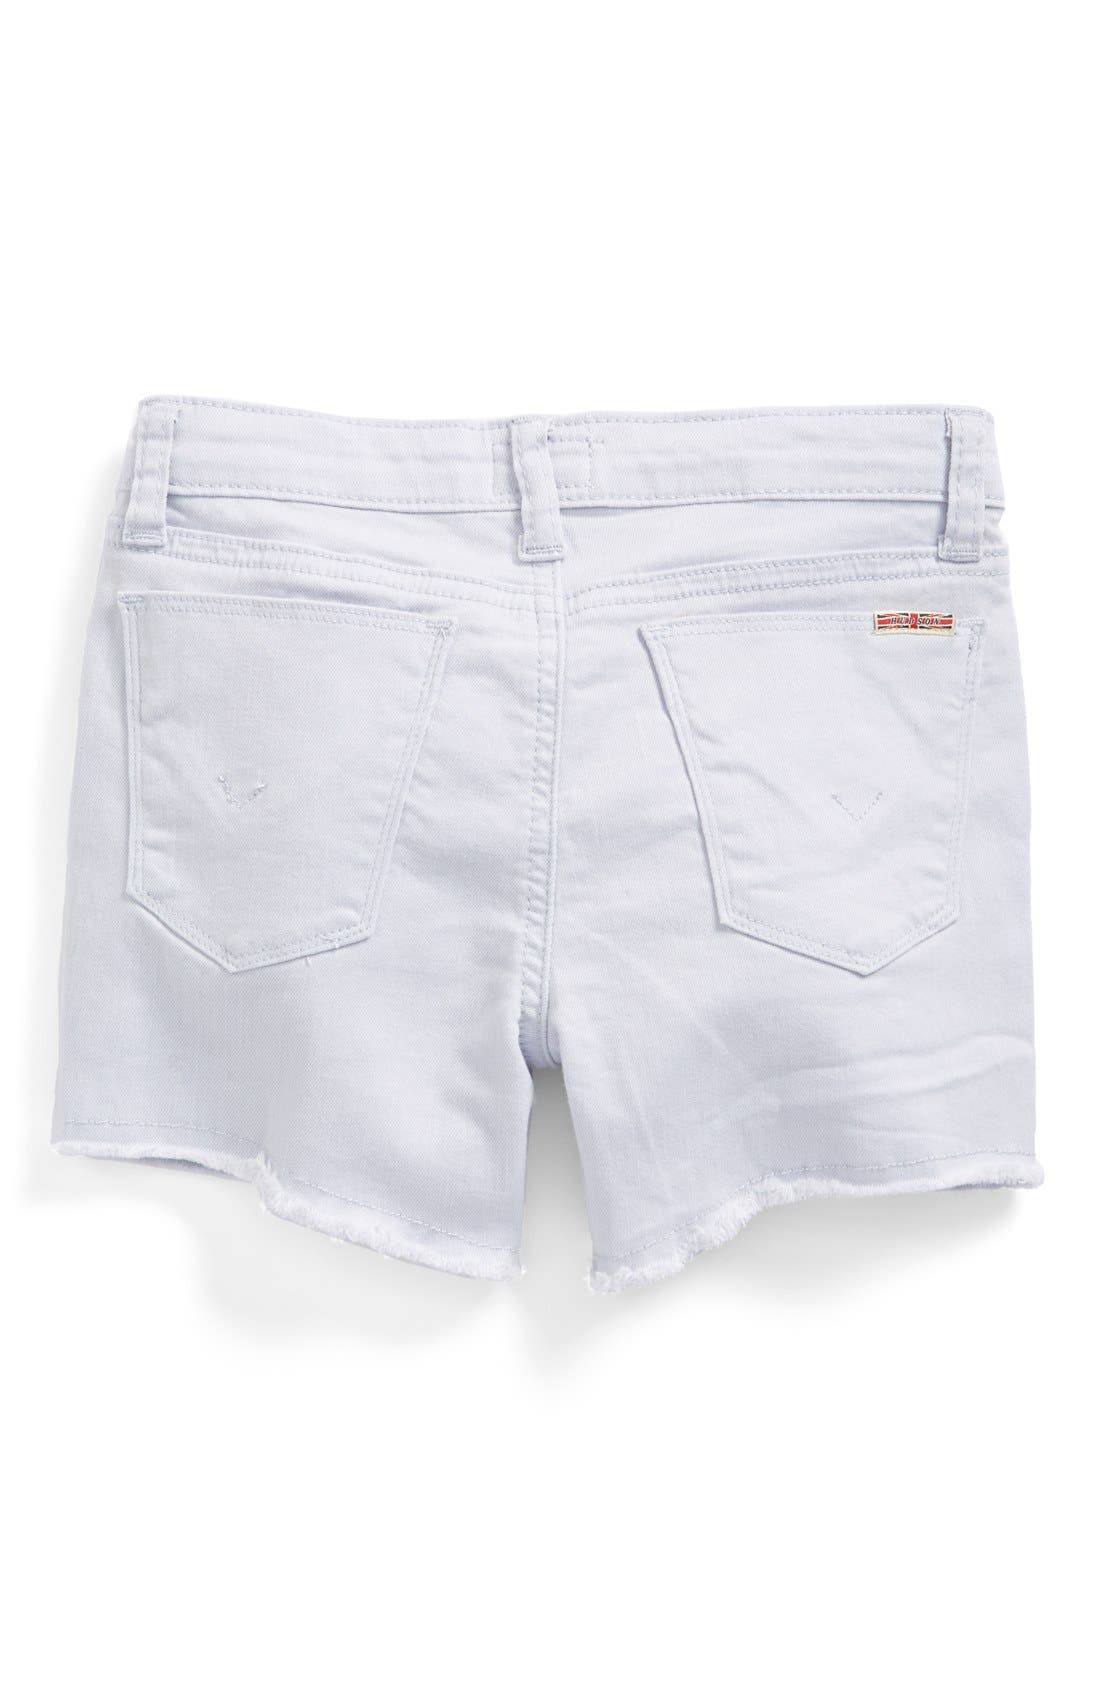 Main Image - Hudson Kids Raw Edge Jean Shorts (Big Girls)